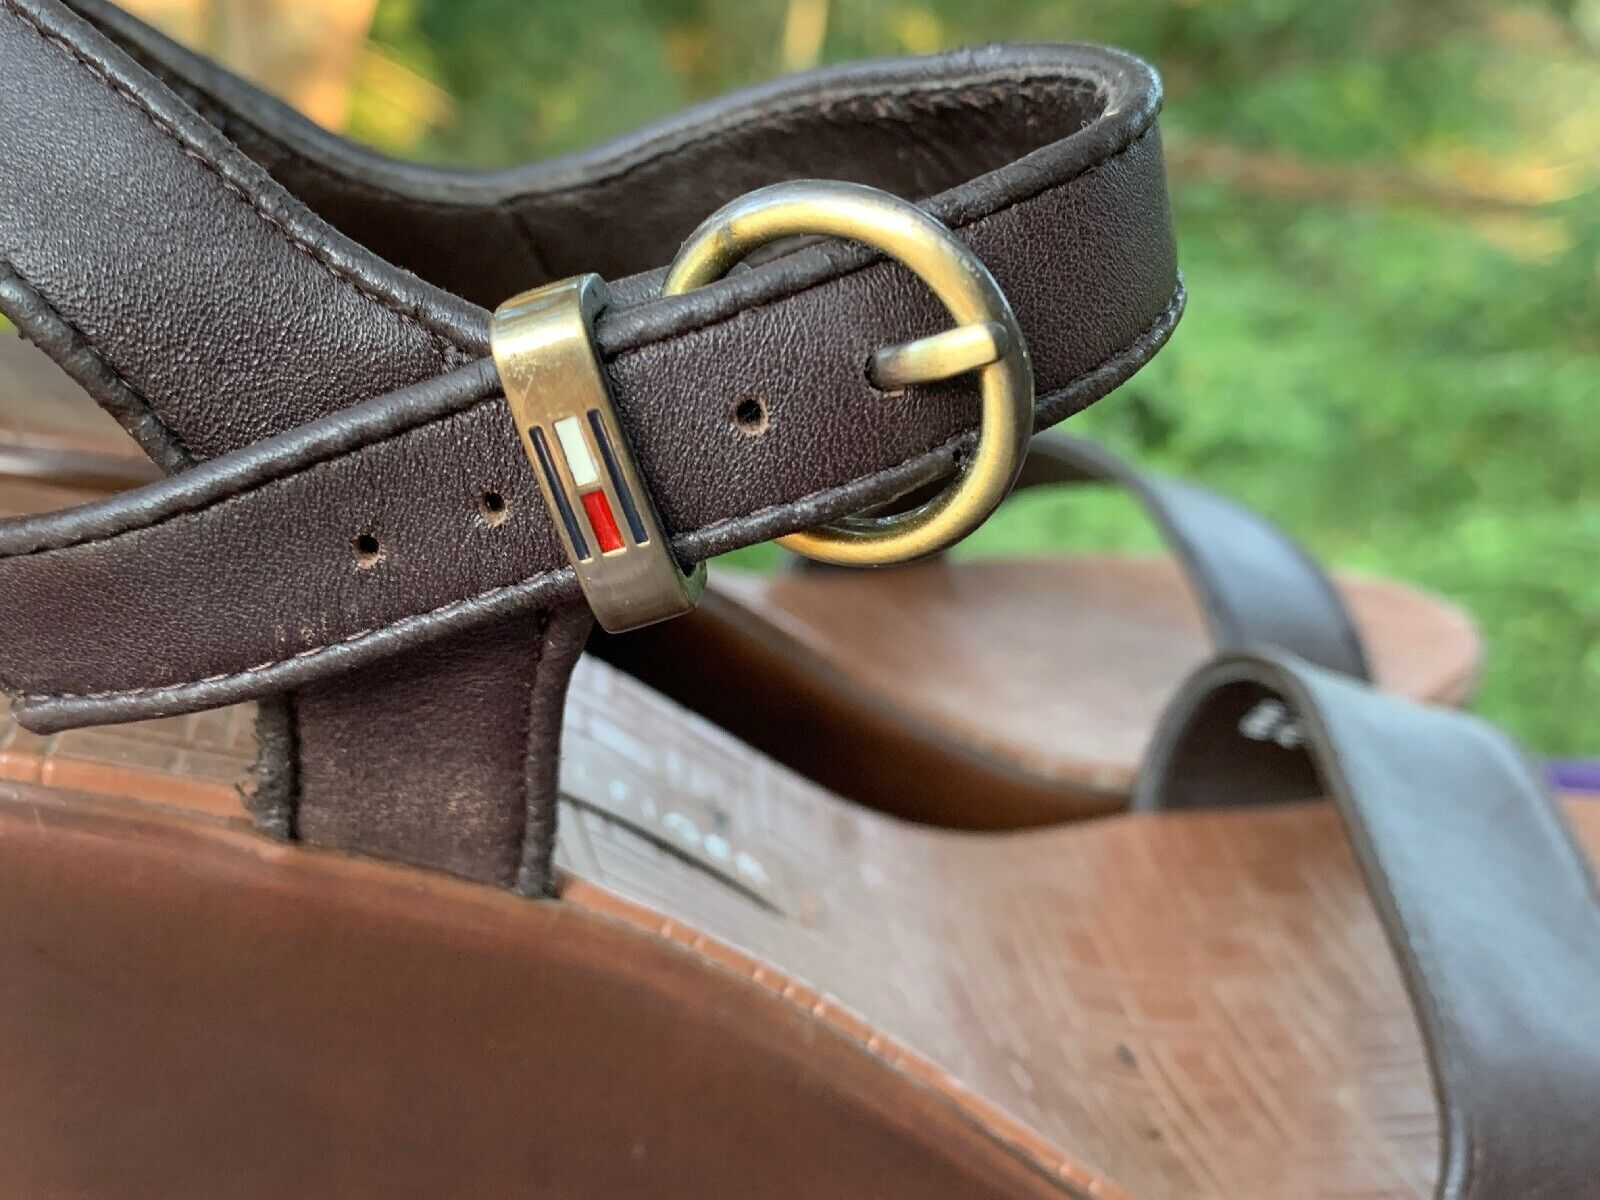 TOMMY HILFIGER Leather Slingbacks Clogs Mules Wed… - image 4